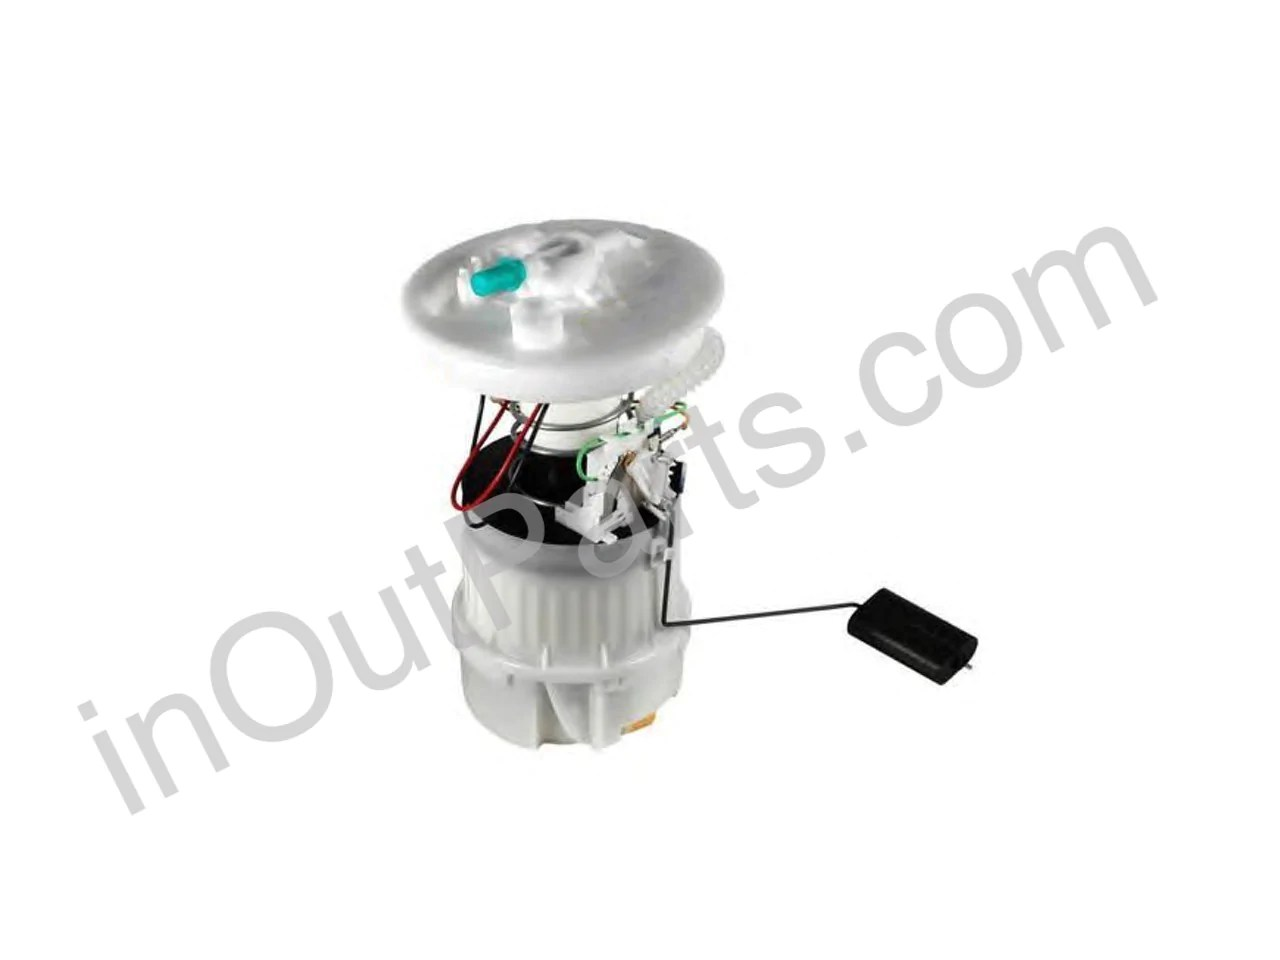 fuel filter fits ford focus 2005 2006 2007 2008 2009 2010 2011 c max 2003 10 with pump [ 1280 x 960 Pixel ]